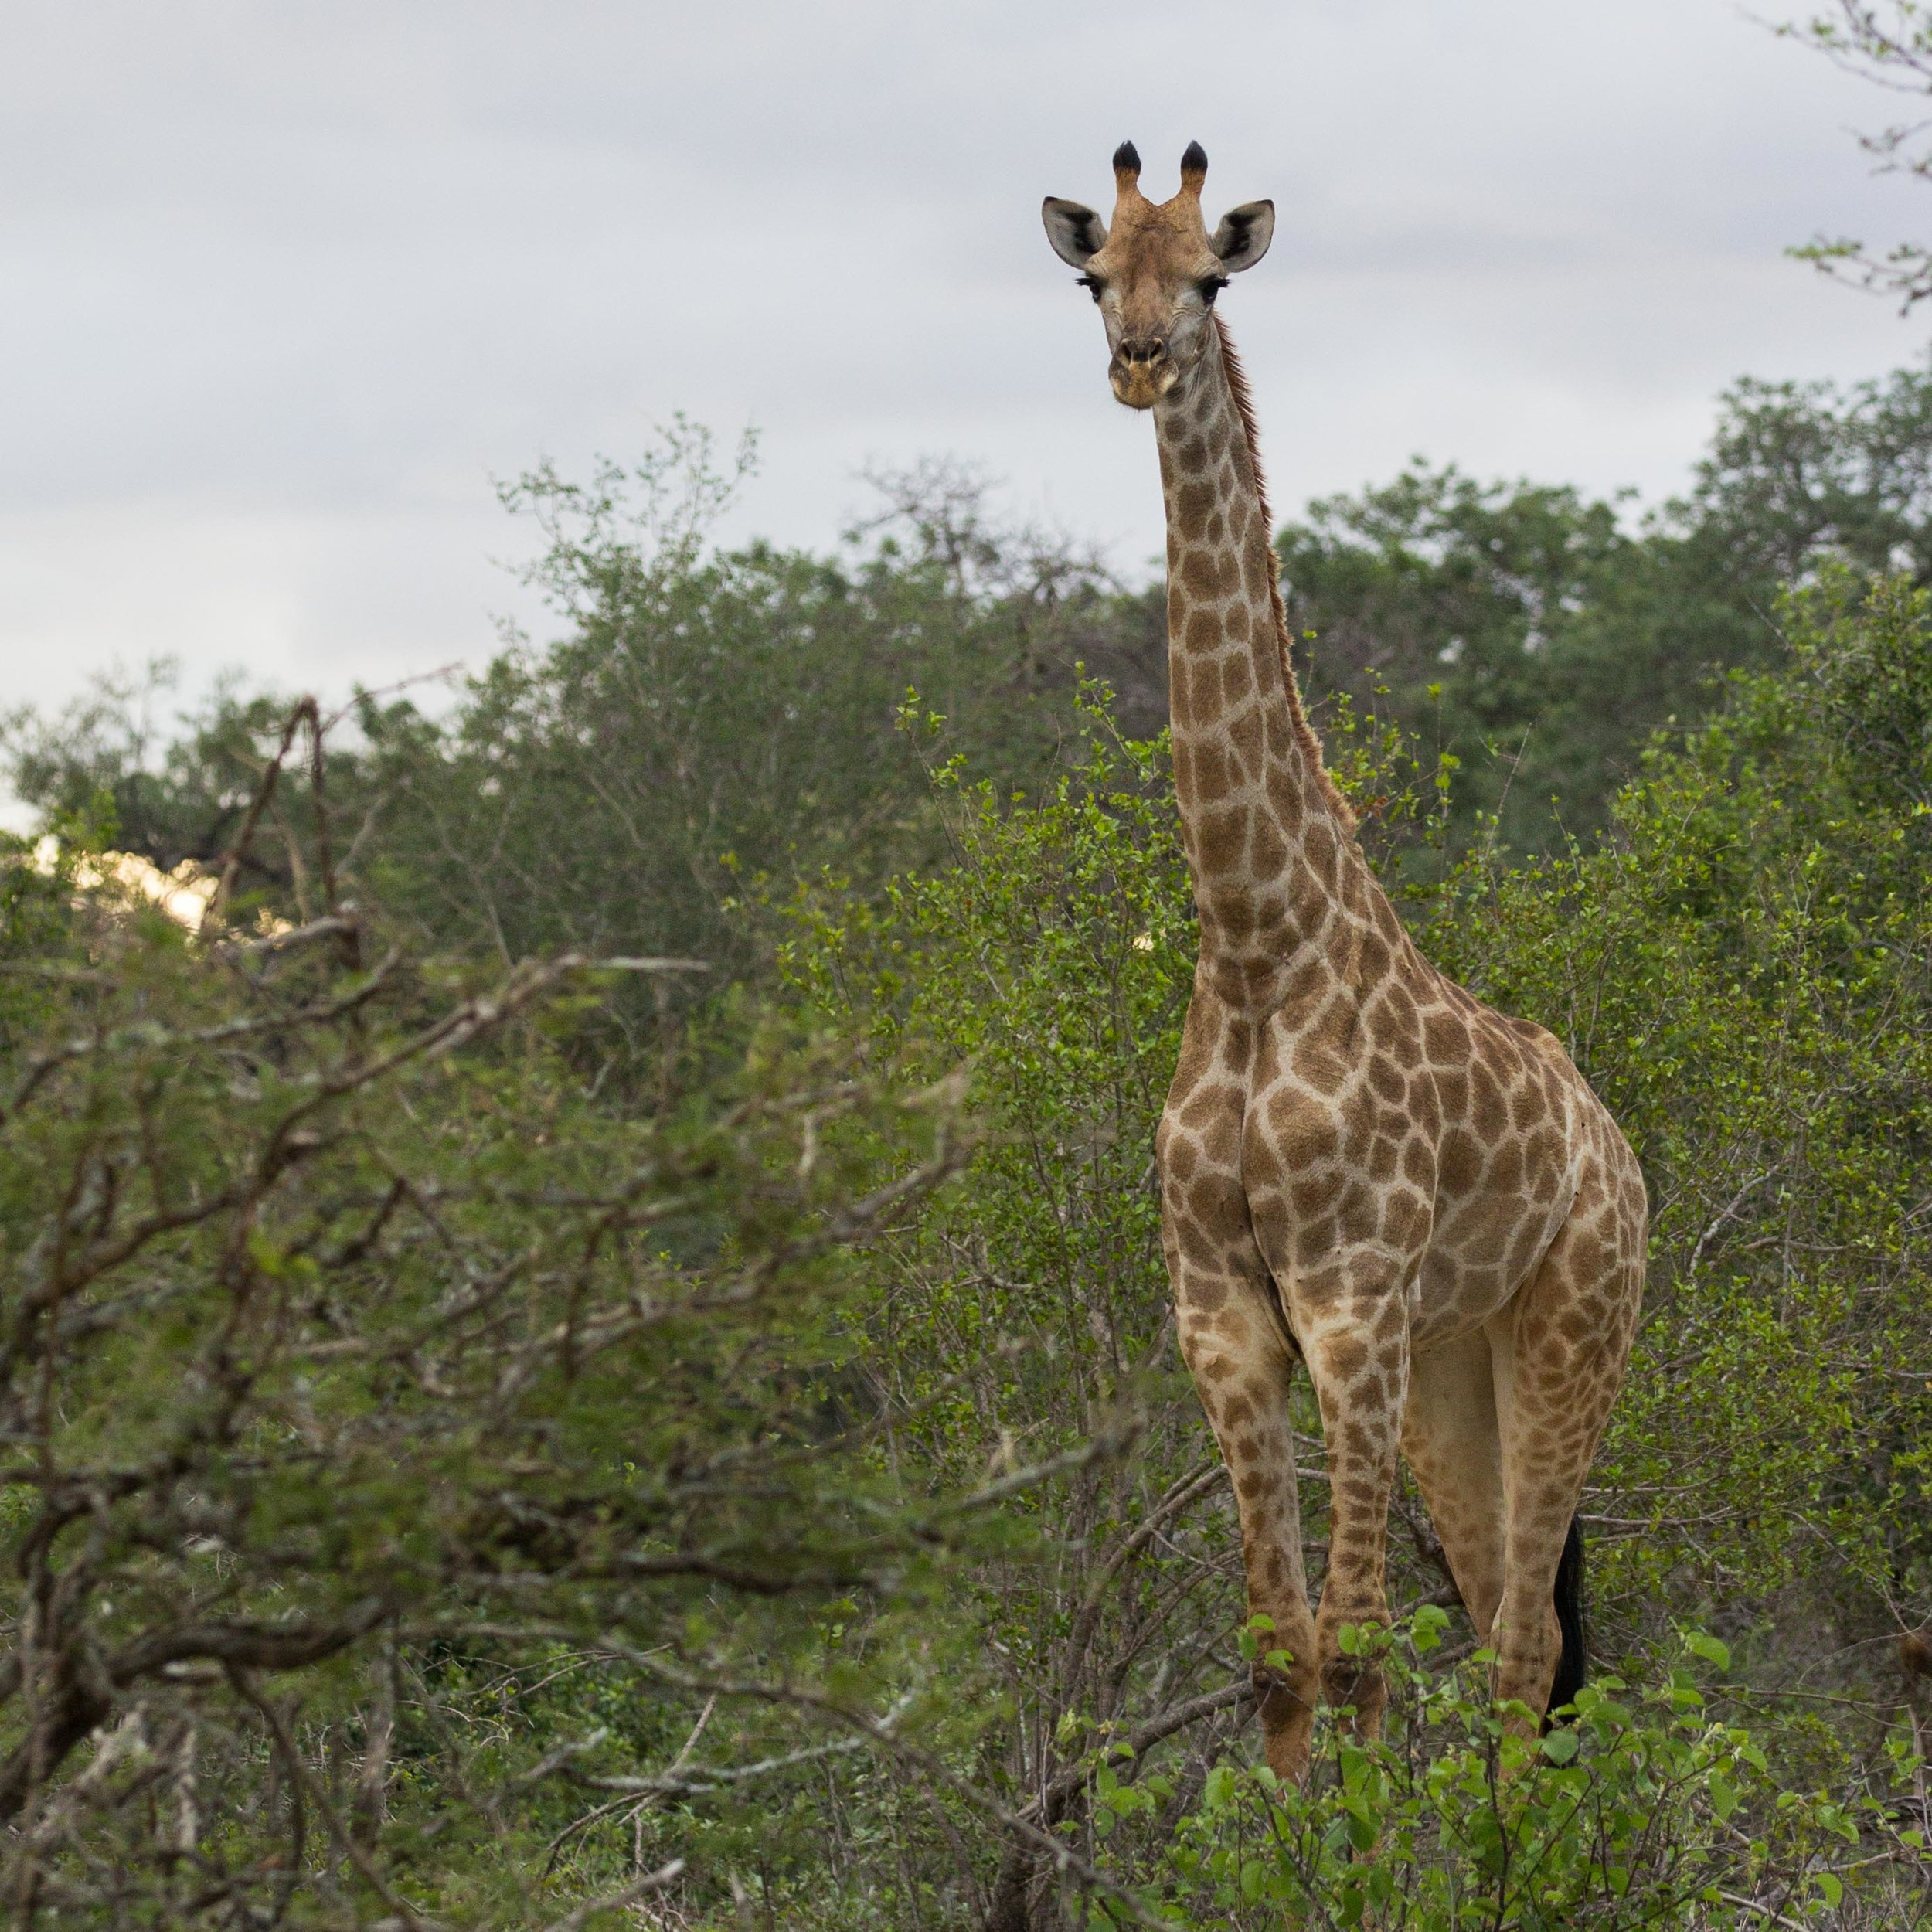 An adult female Southern giraffe stands motionless while inspecting her surroundings.